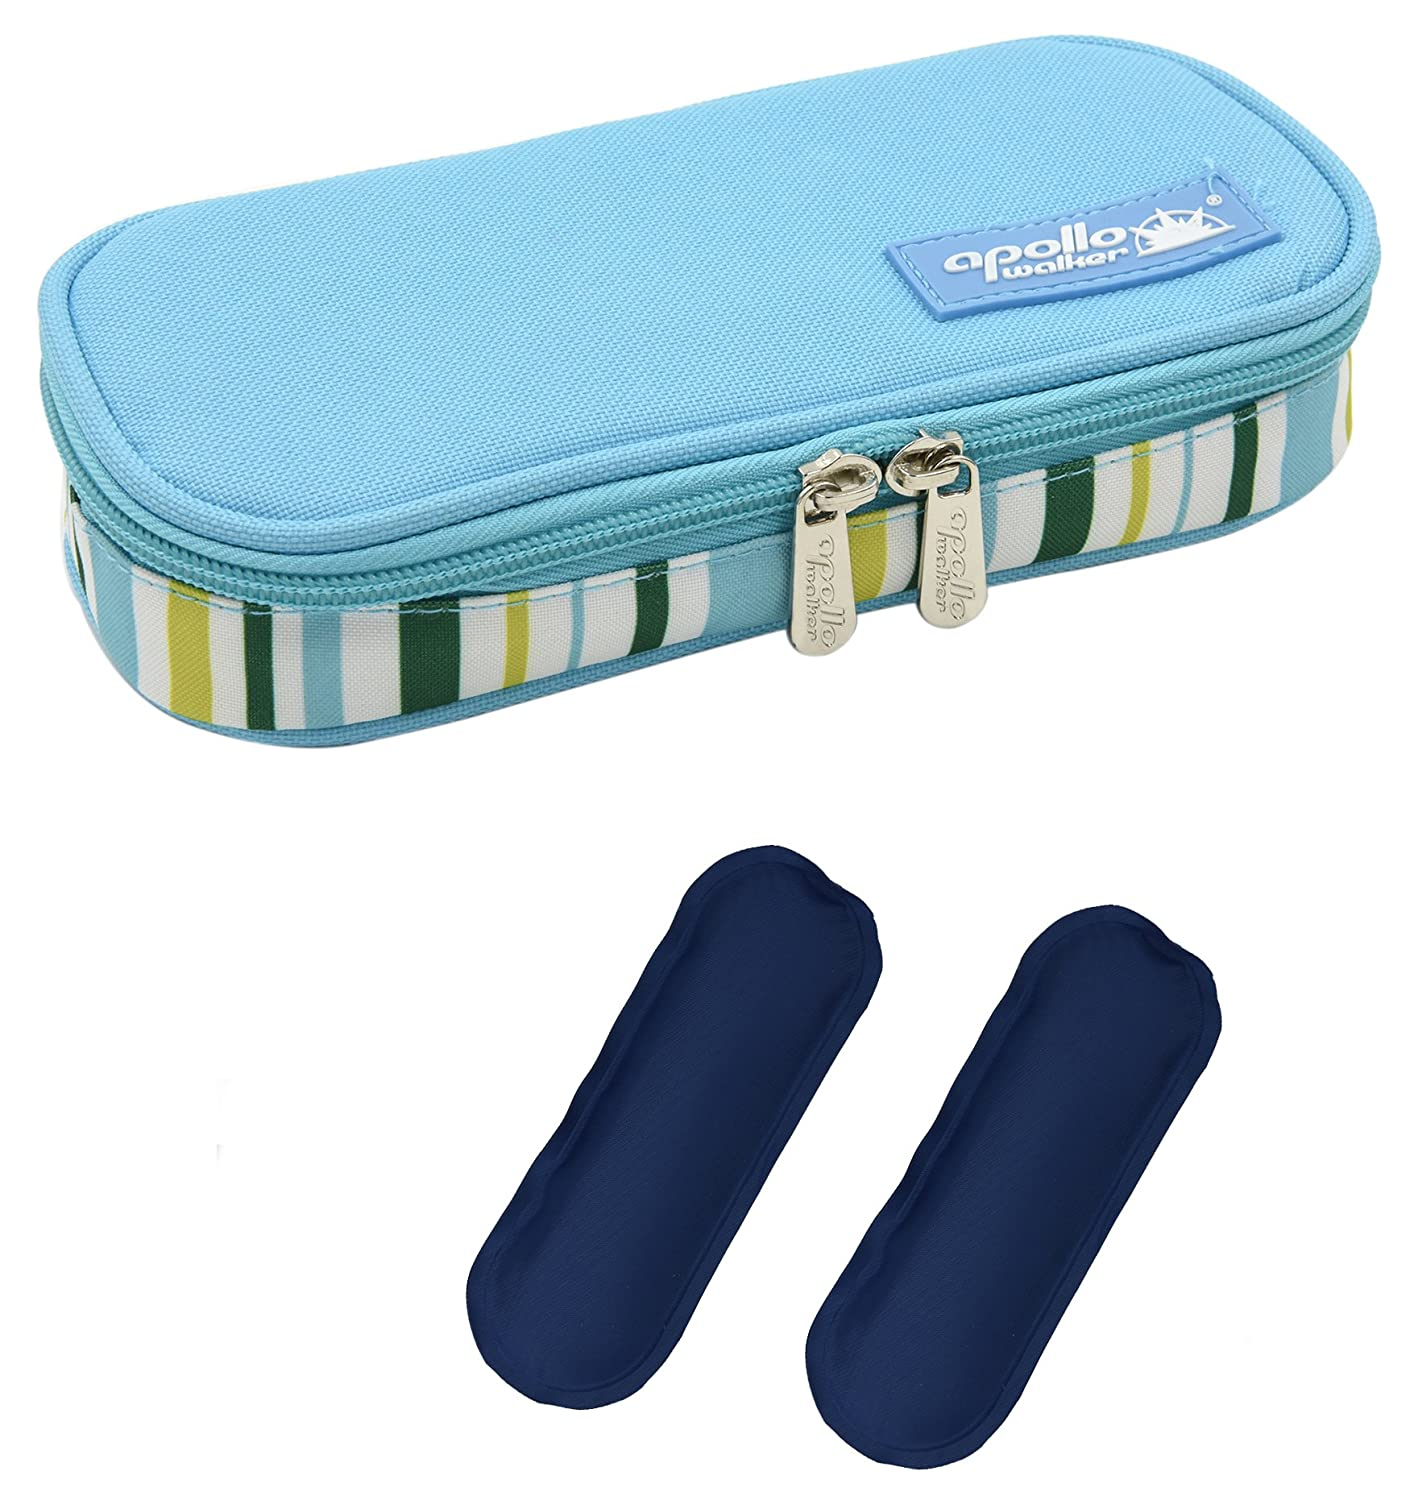 goldwheat Portable Medical Travel Cooler Bag Insulin Cooler Case Ice Bags with 2 Ice Pack